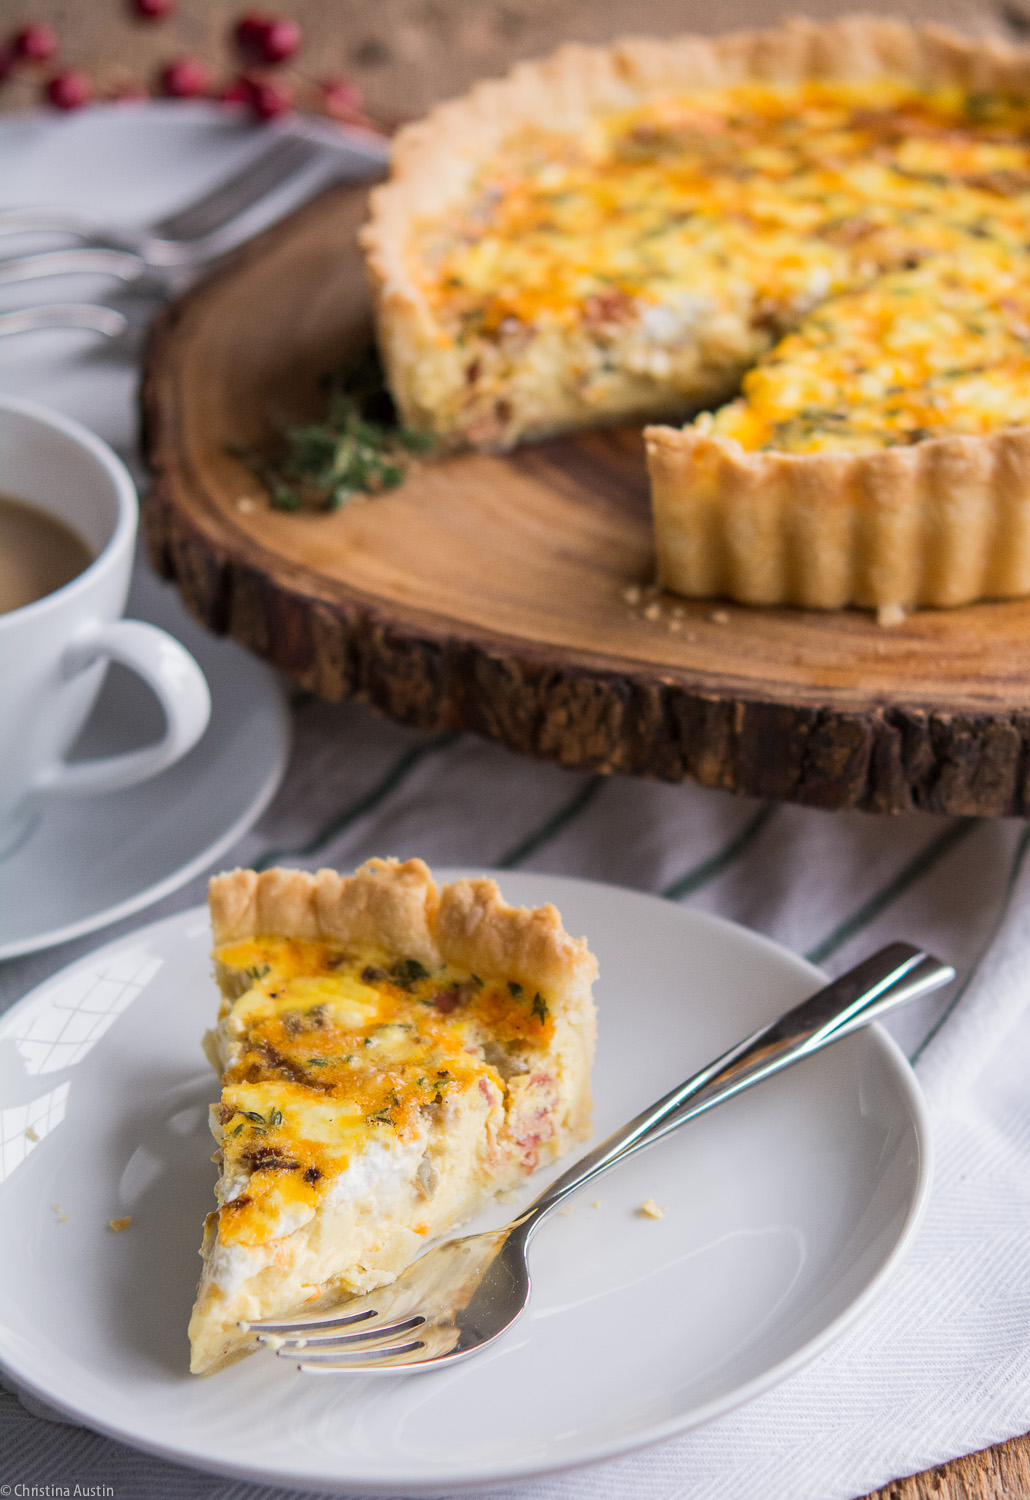 Pancetta Cheddar and Goat Cheese Quiche